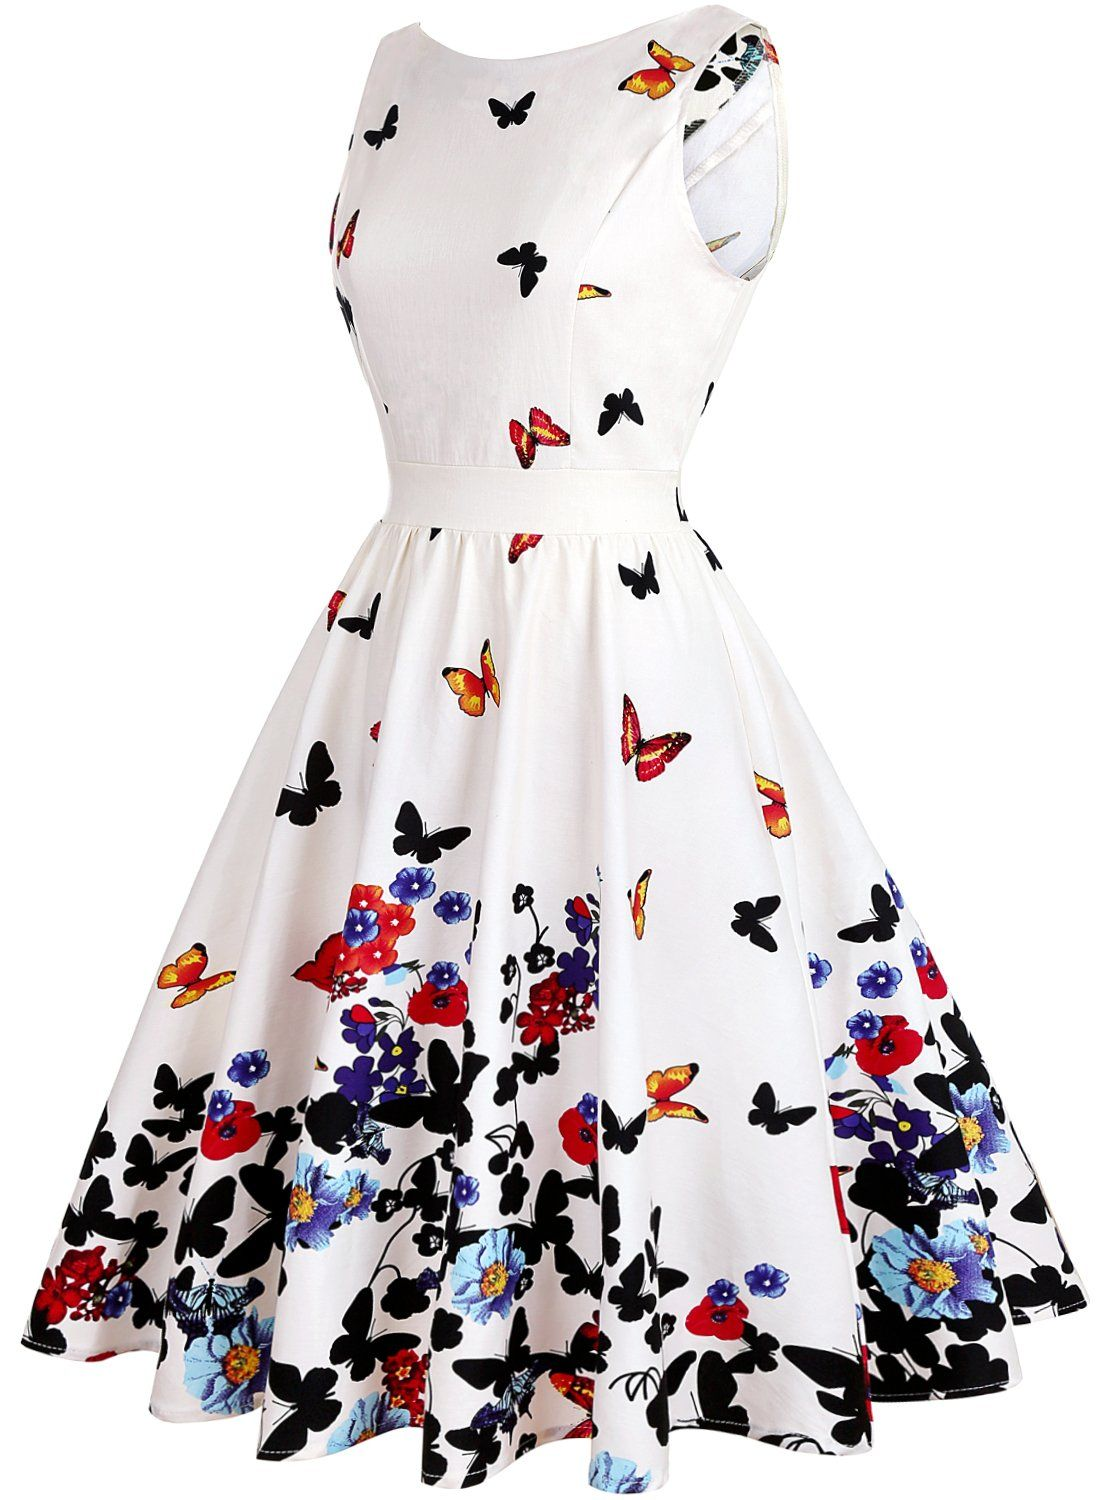 Olady Womens Boatneck Sleeveless Vintage Tea Dress Fit And Flare Rockabilly Floral 1950s Pinup Swing Dressbeige Butter Vintage Tea Dress Dresses Pretty Dresses [ 1500 x 1100 Pixel ]